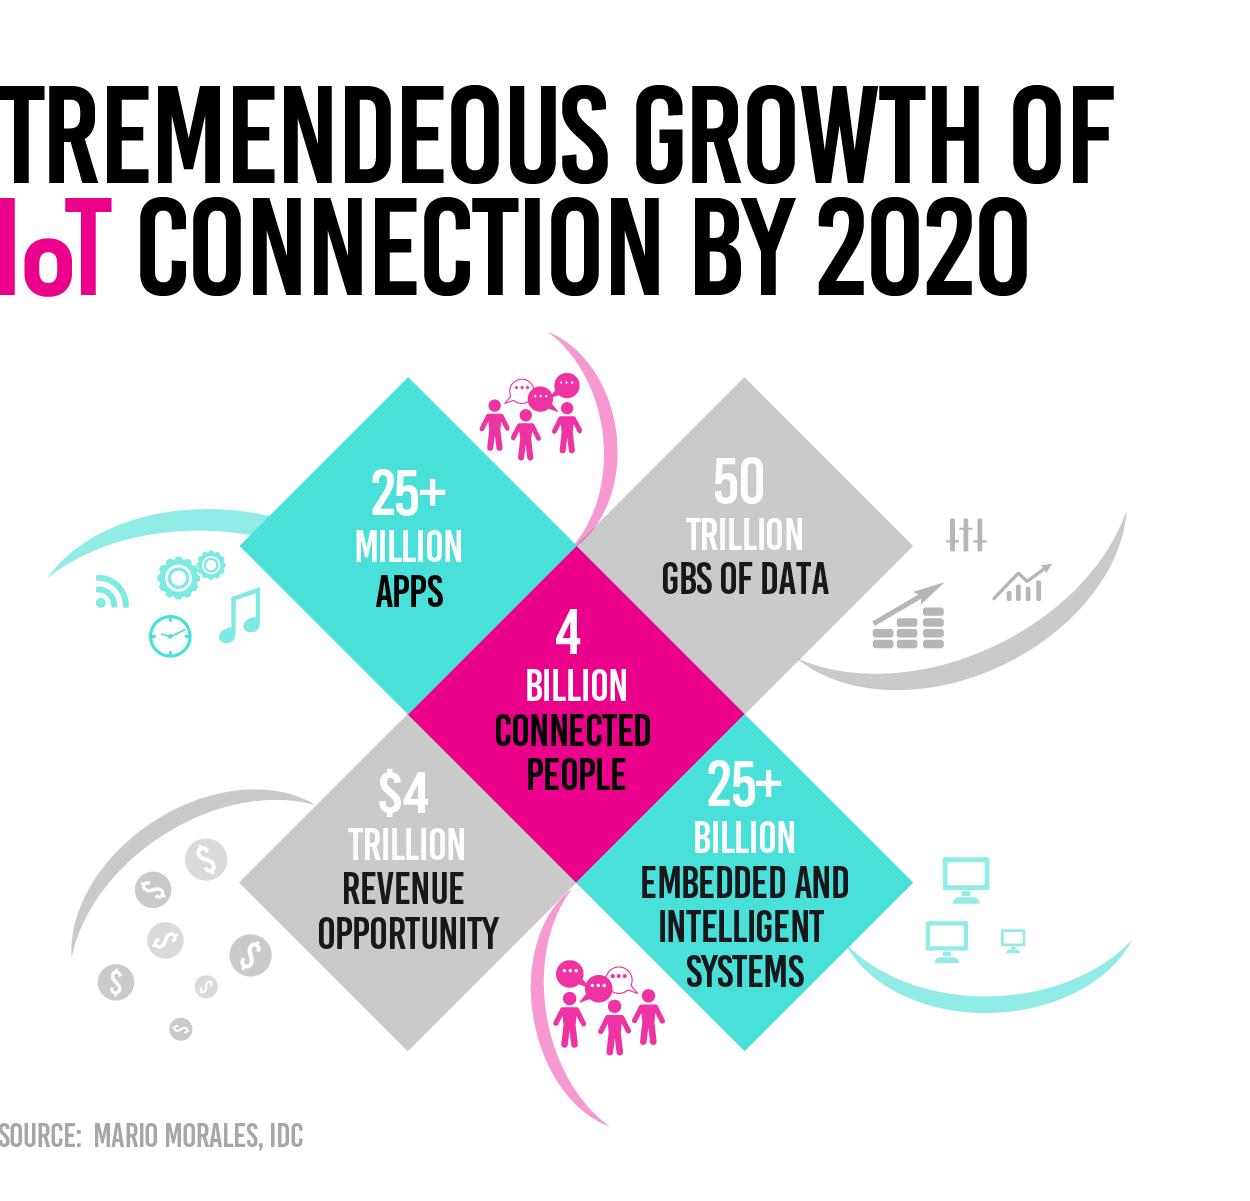 IoT connecting 4 billion people by 2020